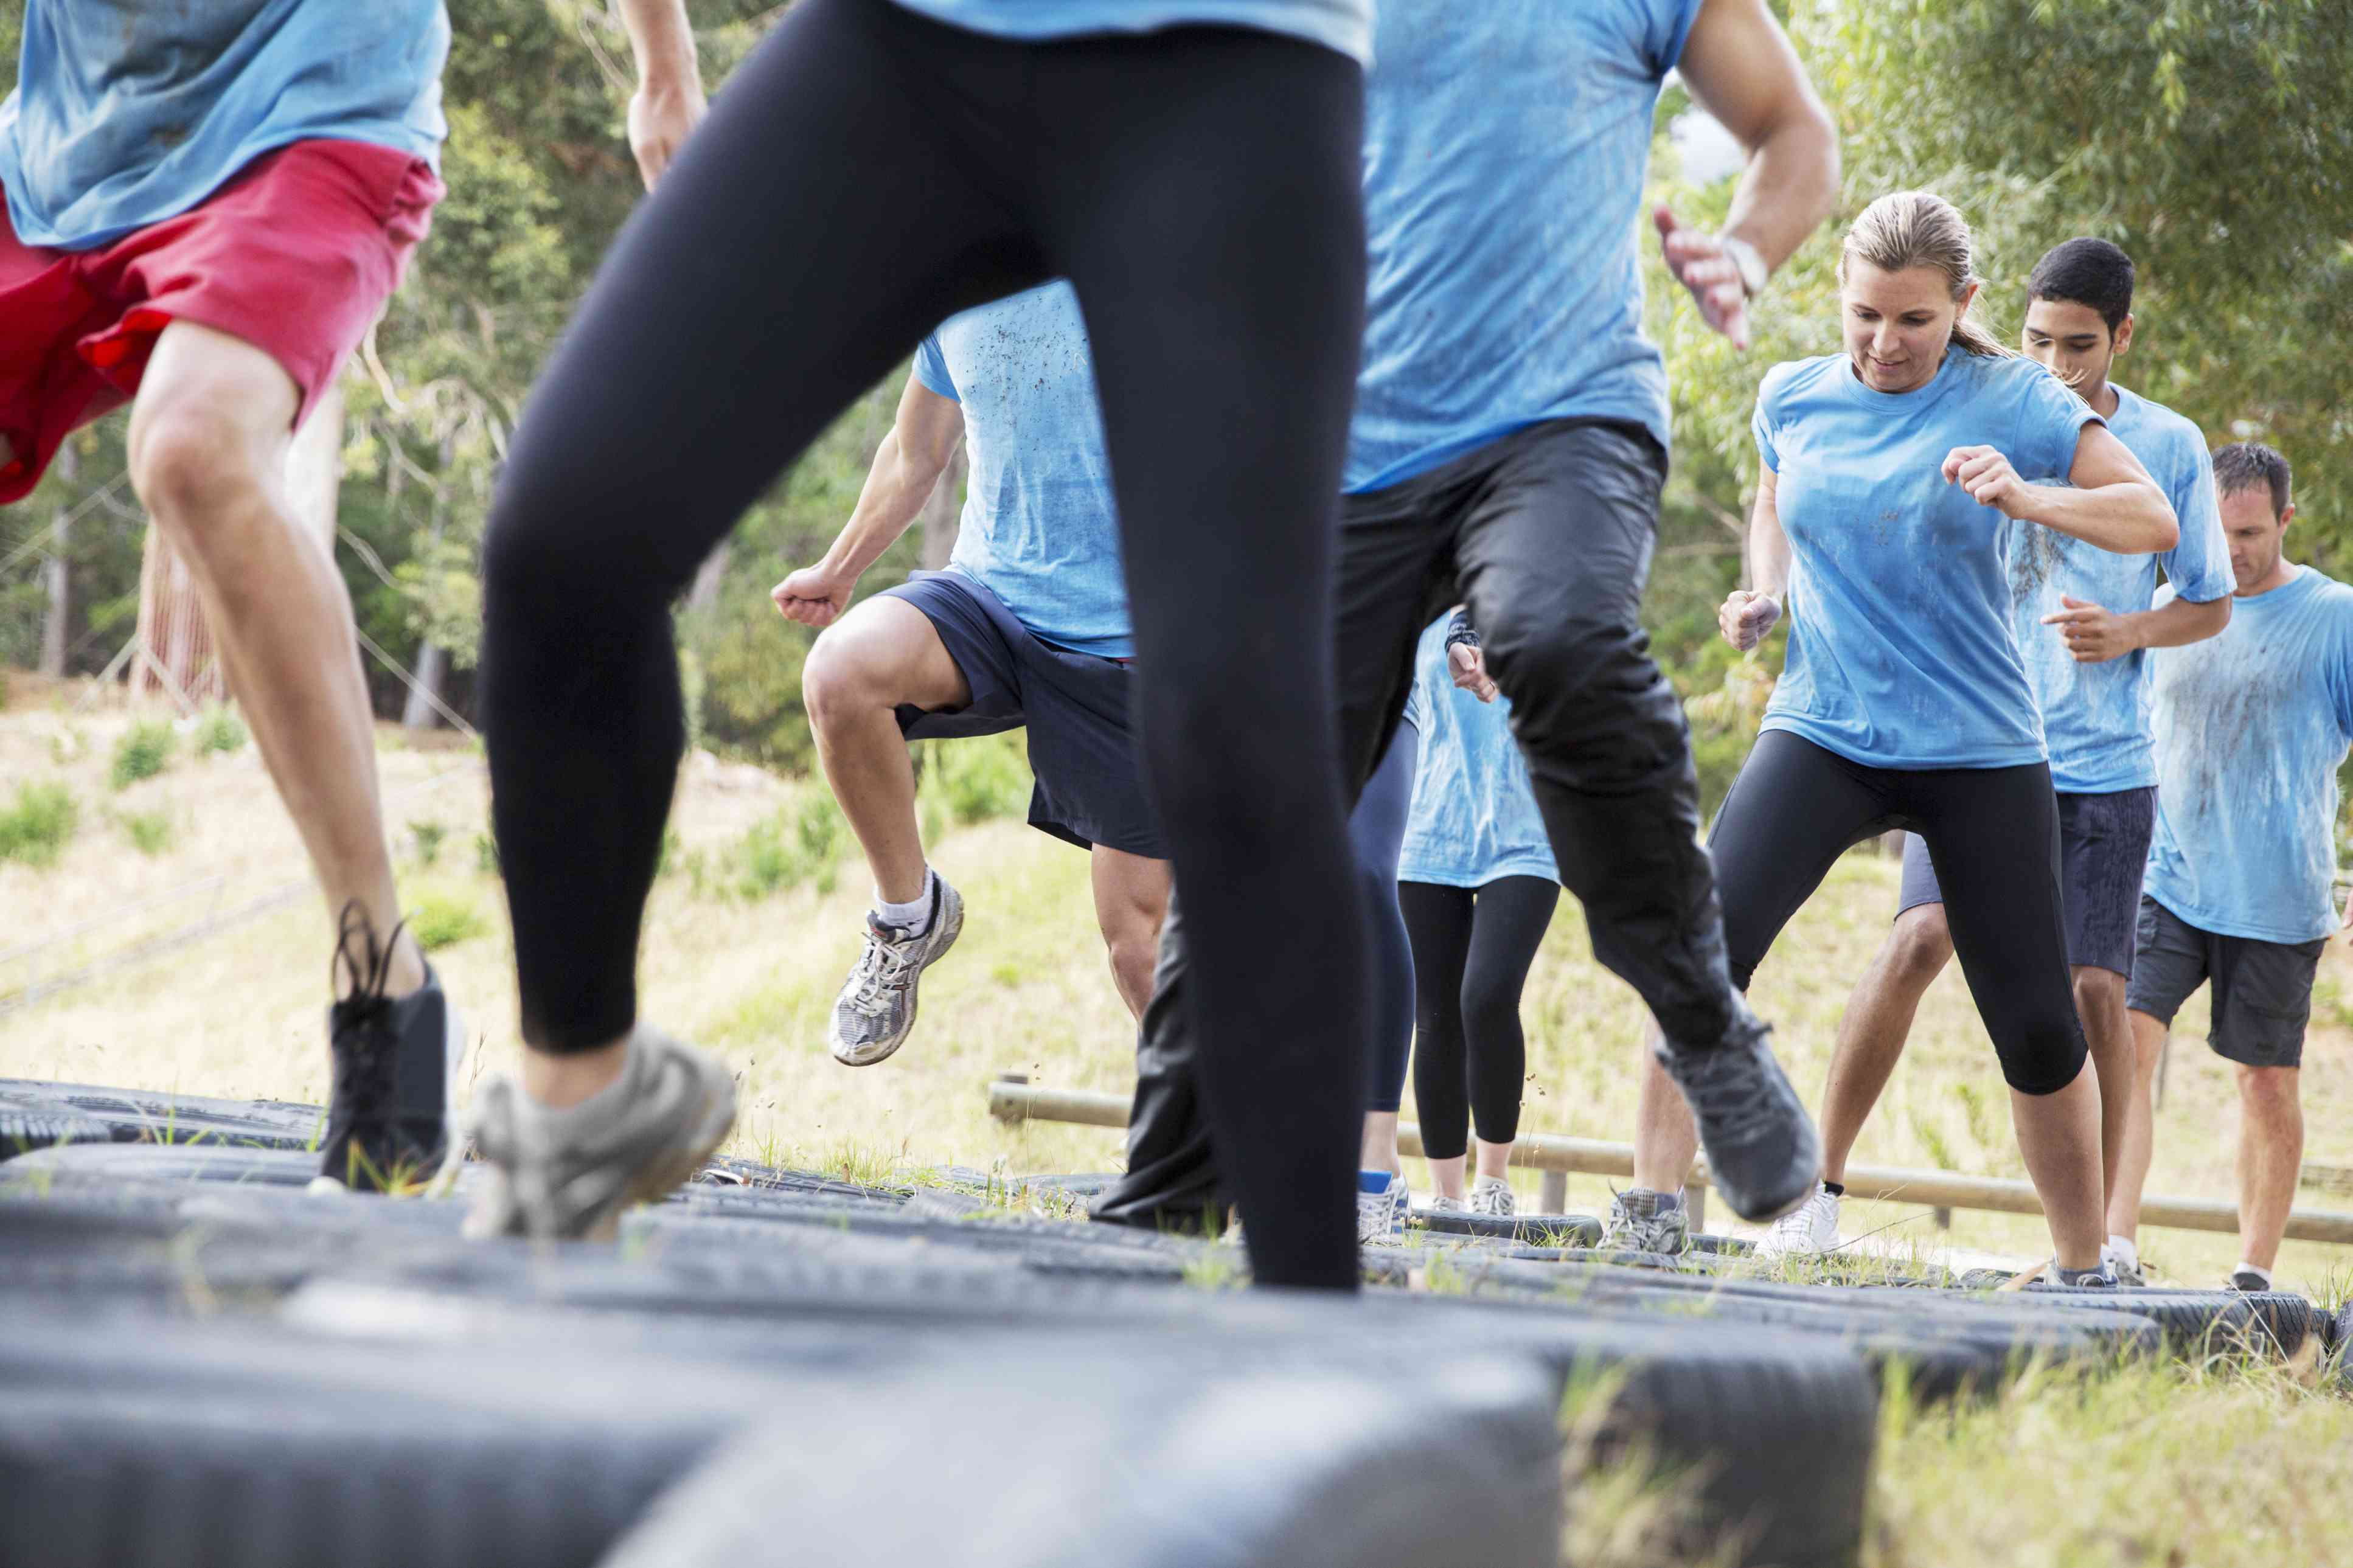 Determined people jumping tires on boot camp obstacle course